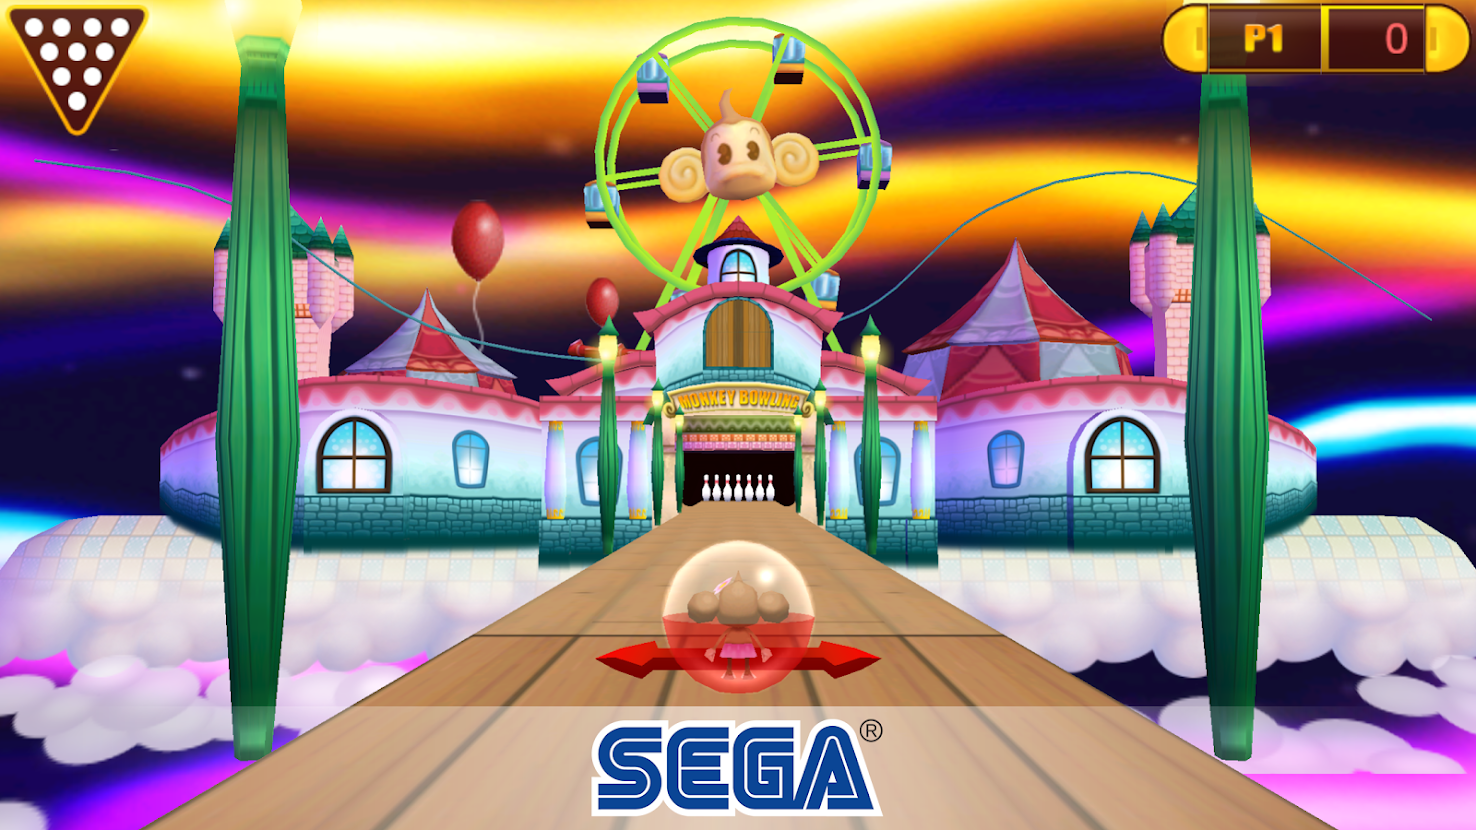 Sega just released 'Super Monkey Ball: Sakura Edition' as ...